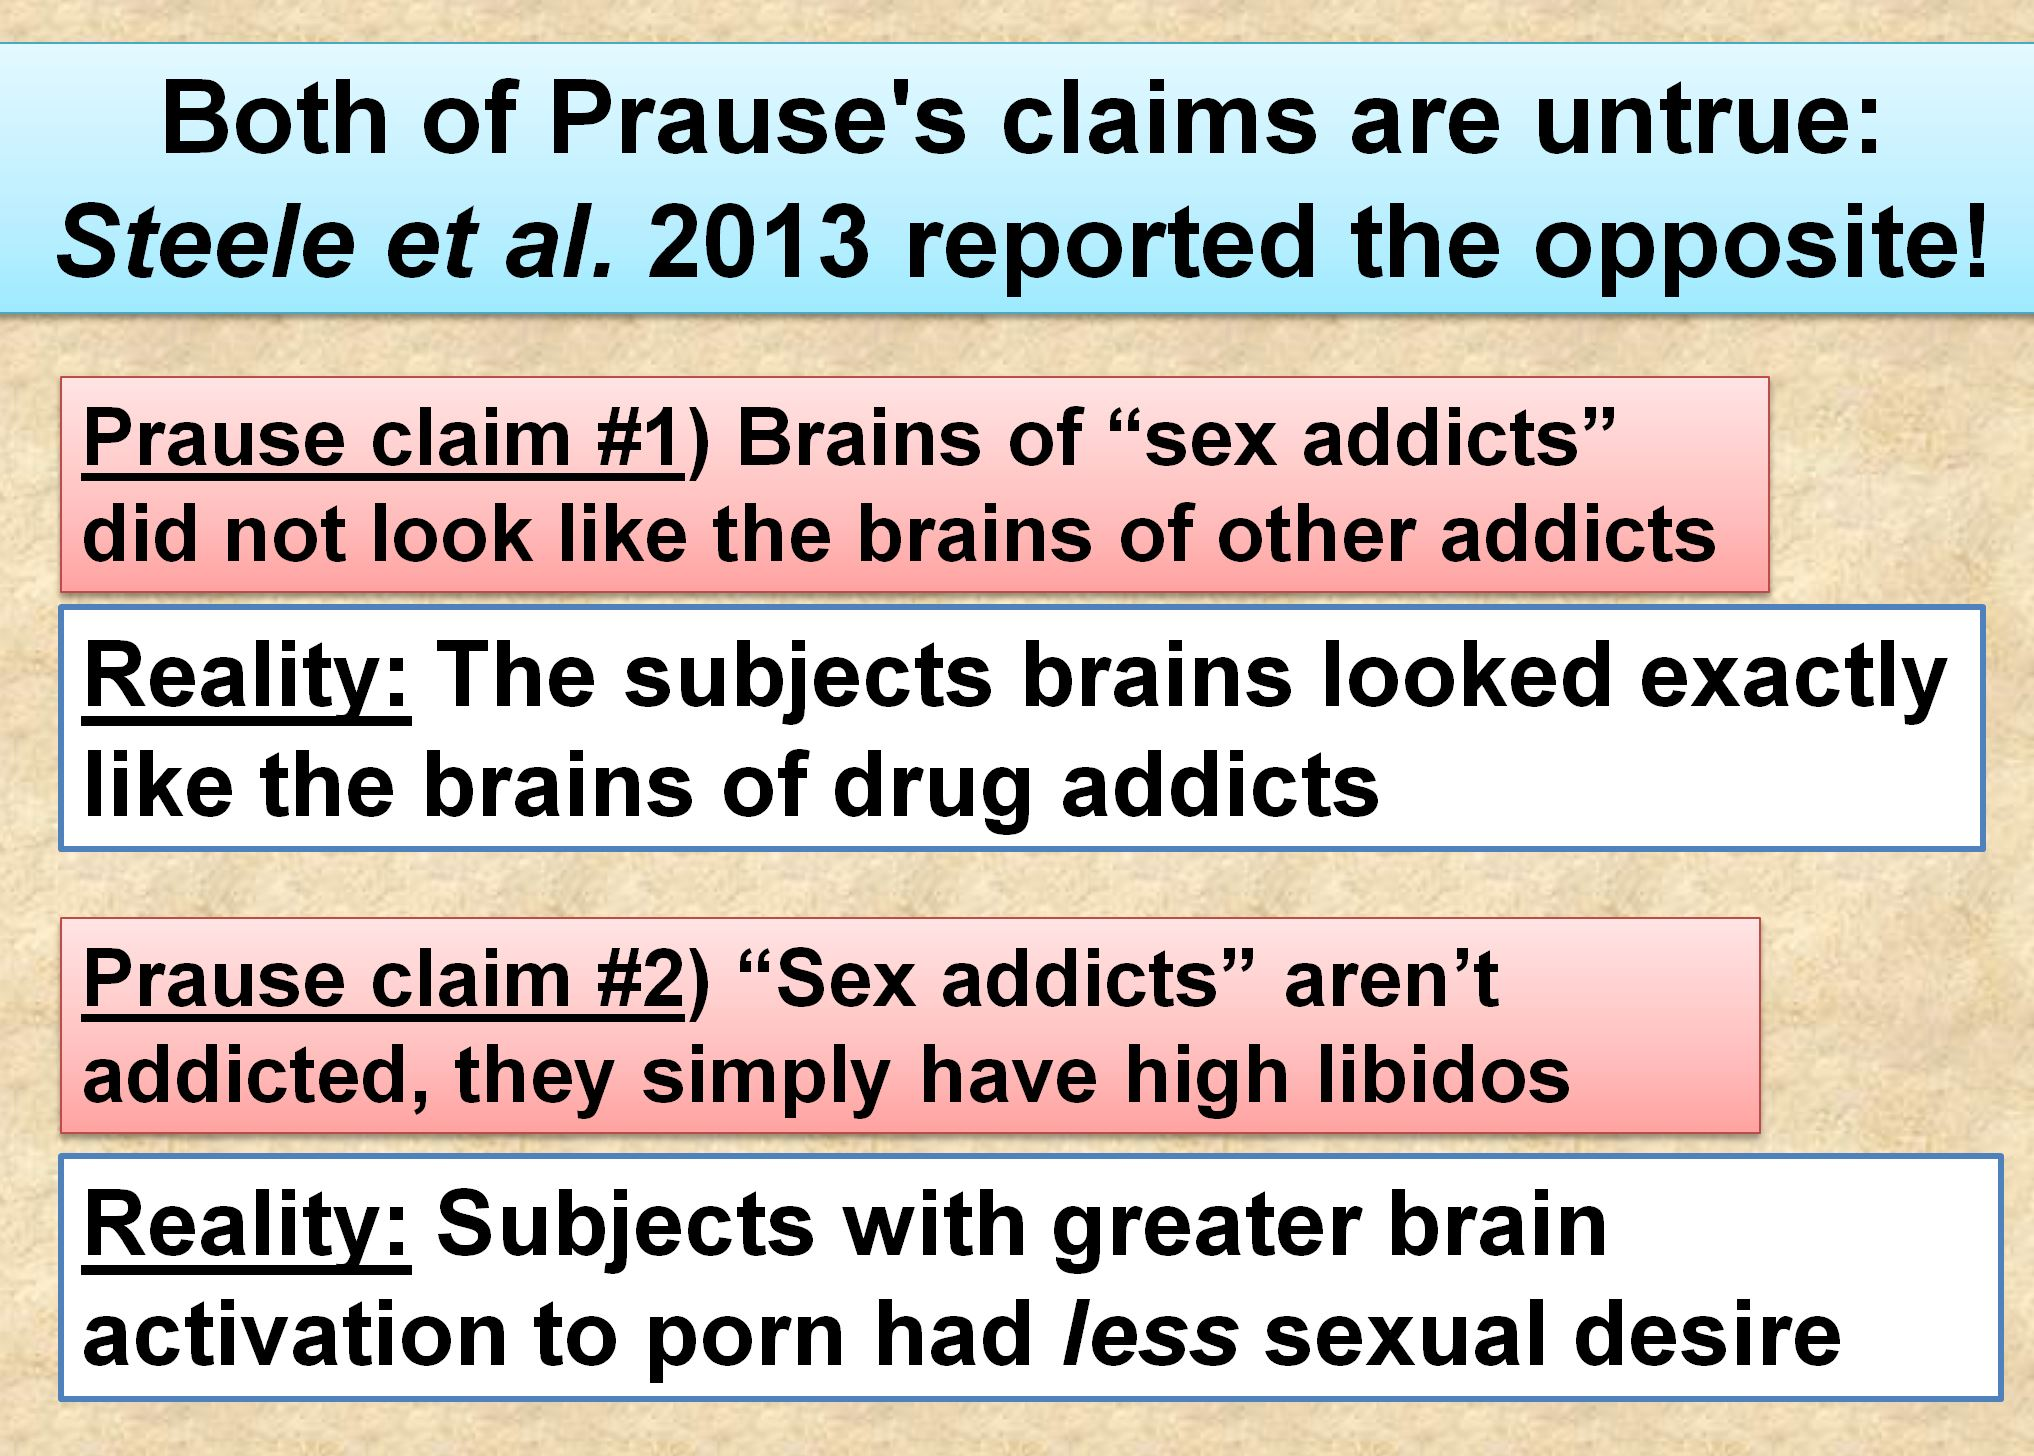 BOTH OF PRAUSE'S CLAIMS ARE UNTRUE